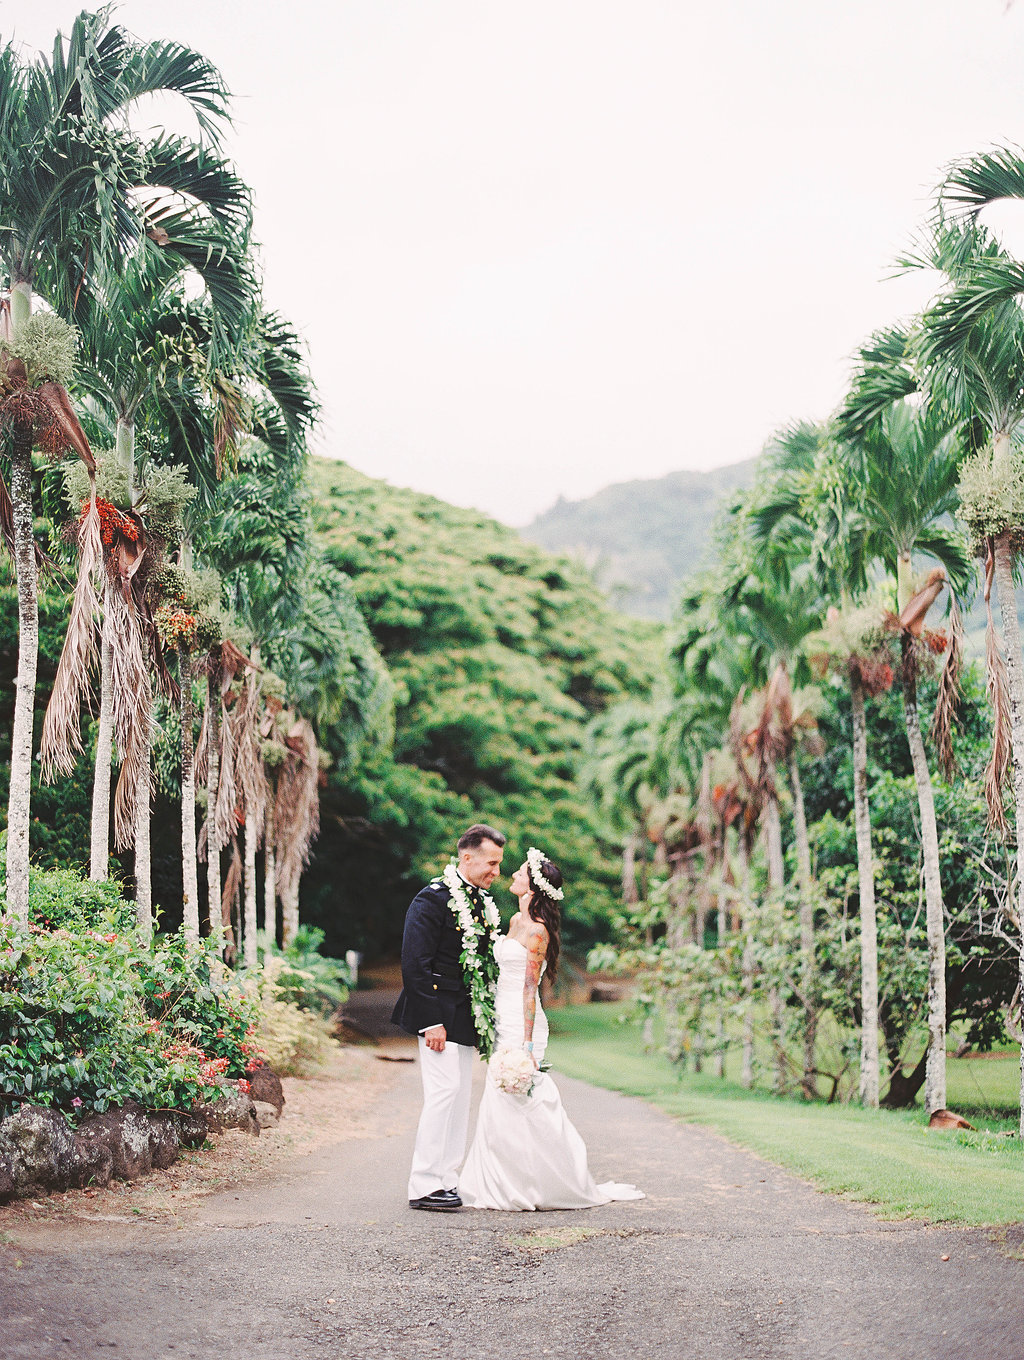 06.11.14-Lauren & Aaron-Ever After Events-Ashley Goodwin Photography-Kualoa Ranch-Hawaii Wedding-Military Wedding (76)